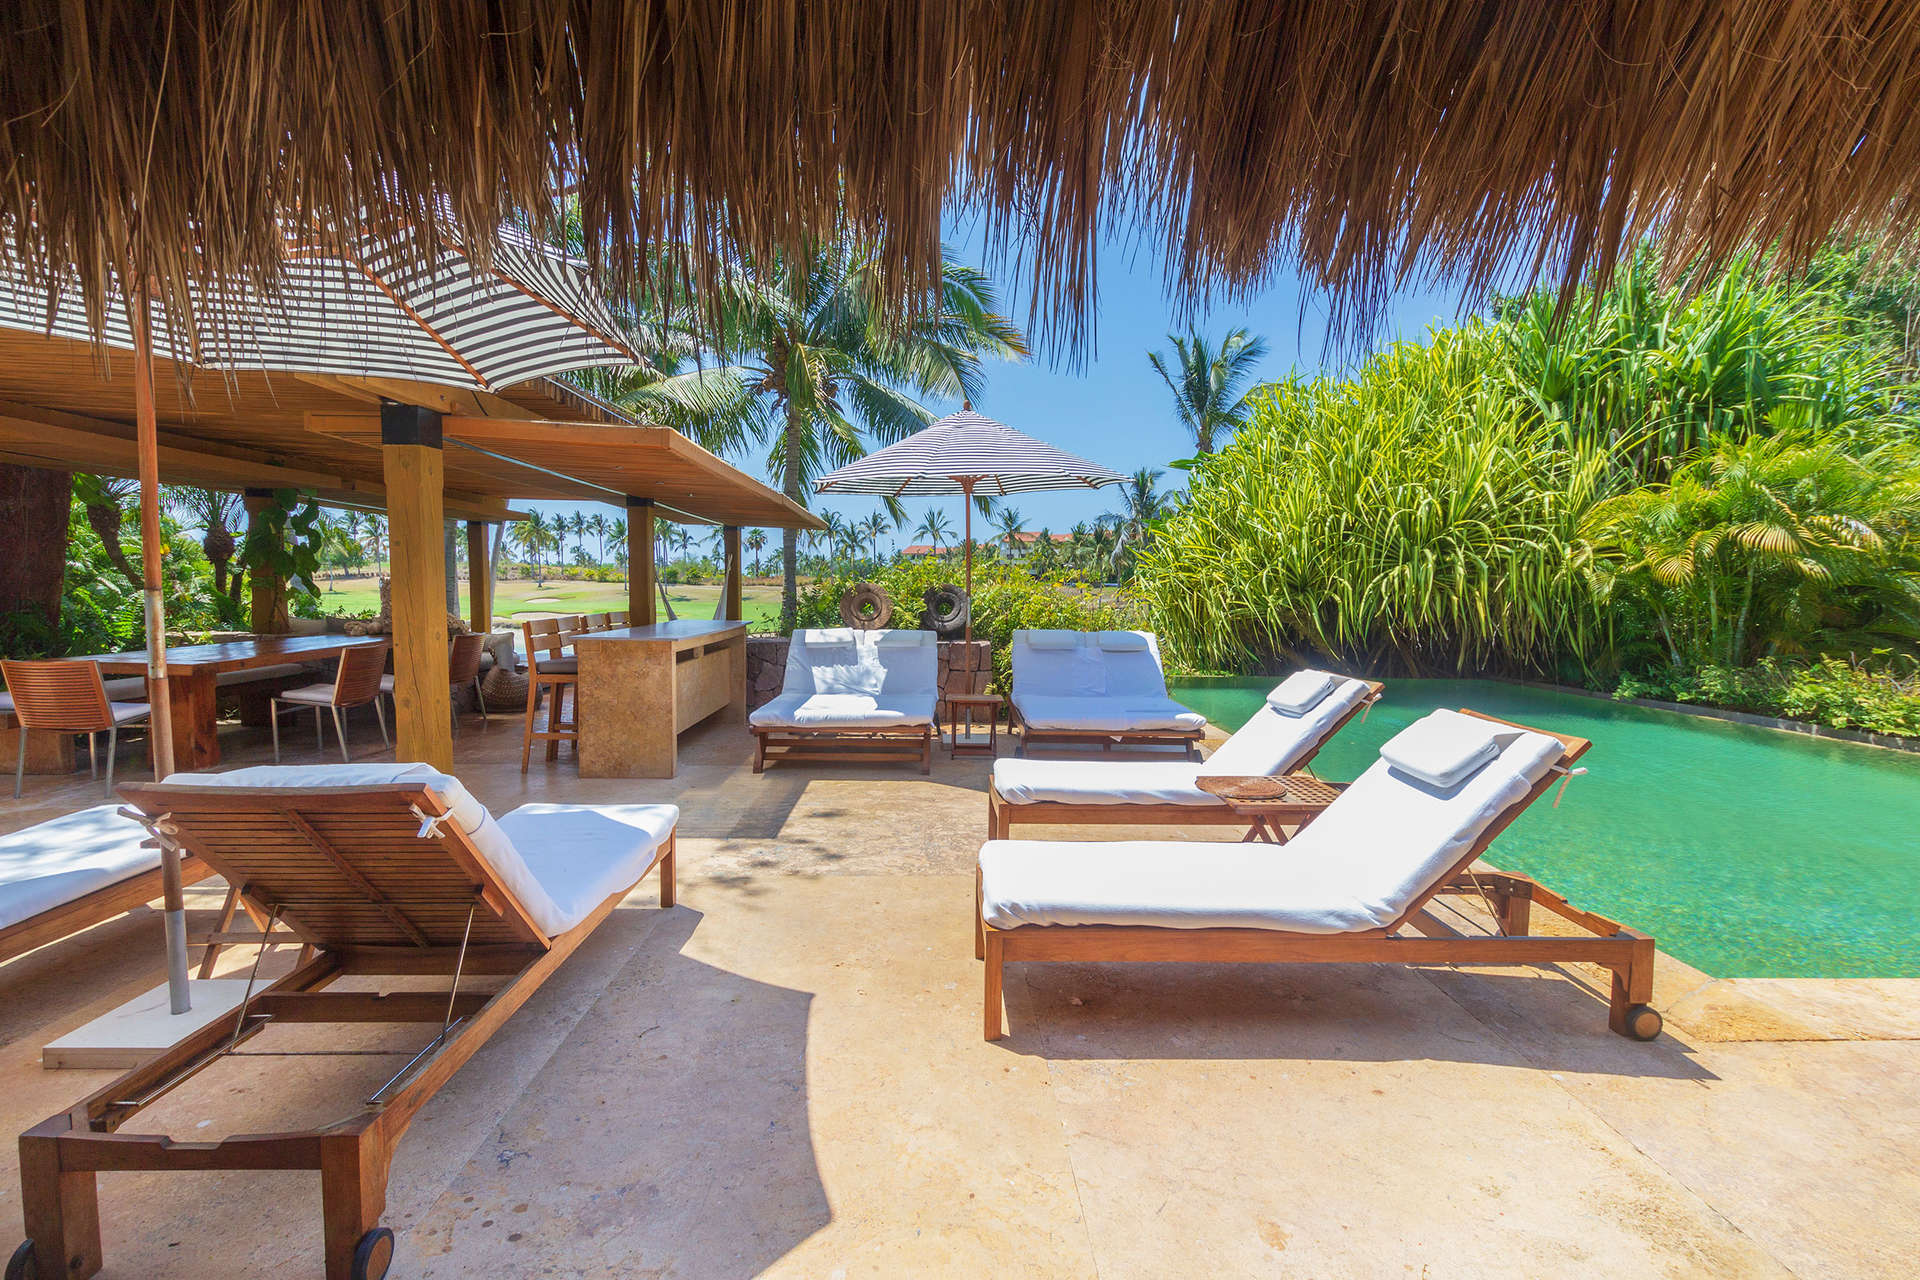 Luxury vacation rentals mexico - Punta mita - Lagos delmar - No location 4 - Villa Aire - Image 1/33